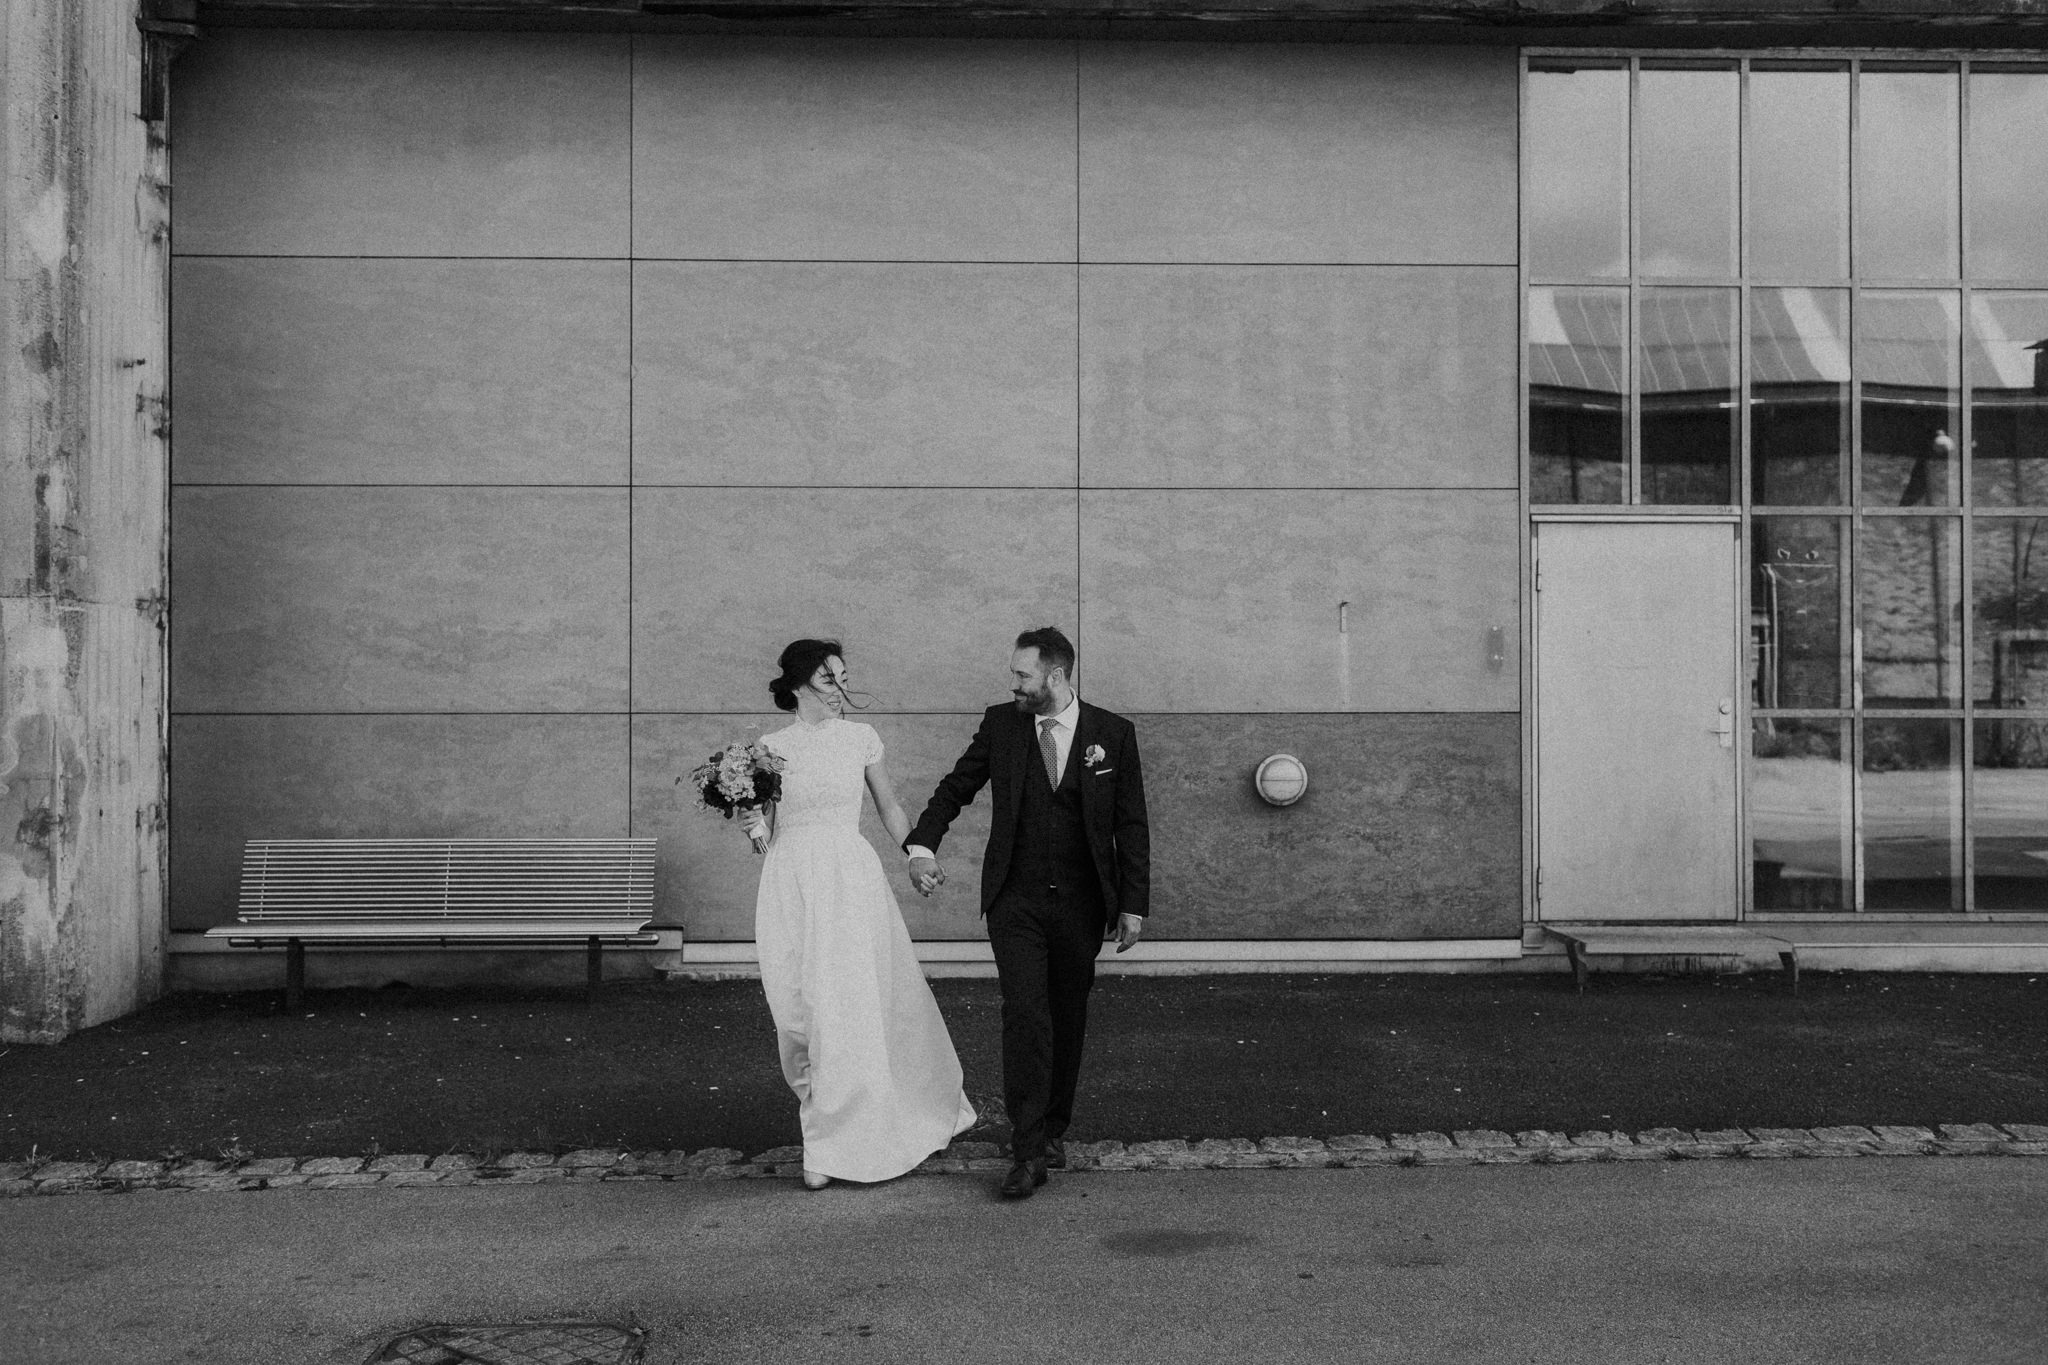 Copenhagen Intimate Wedding